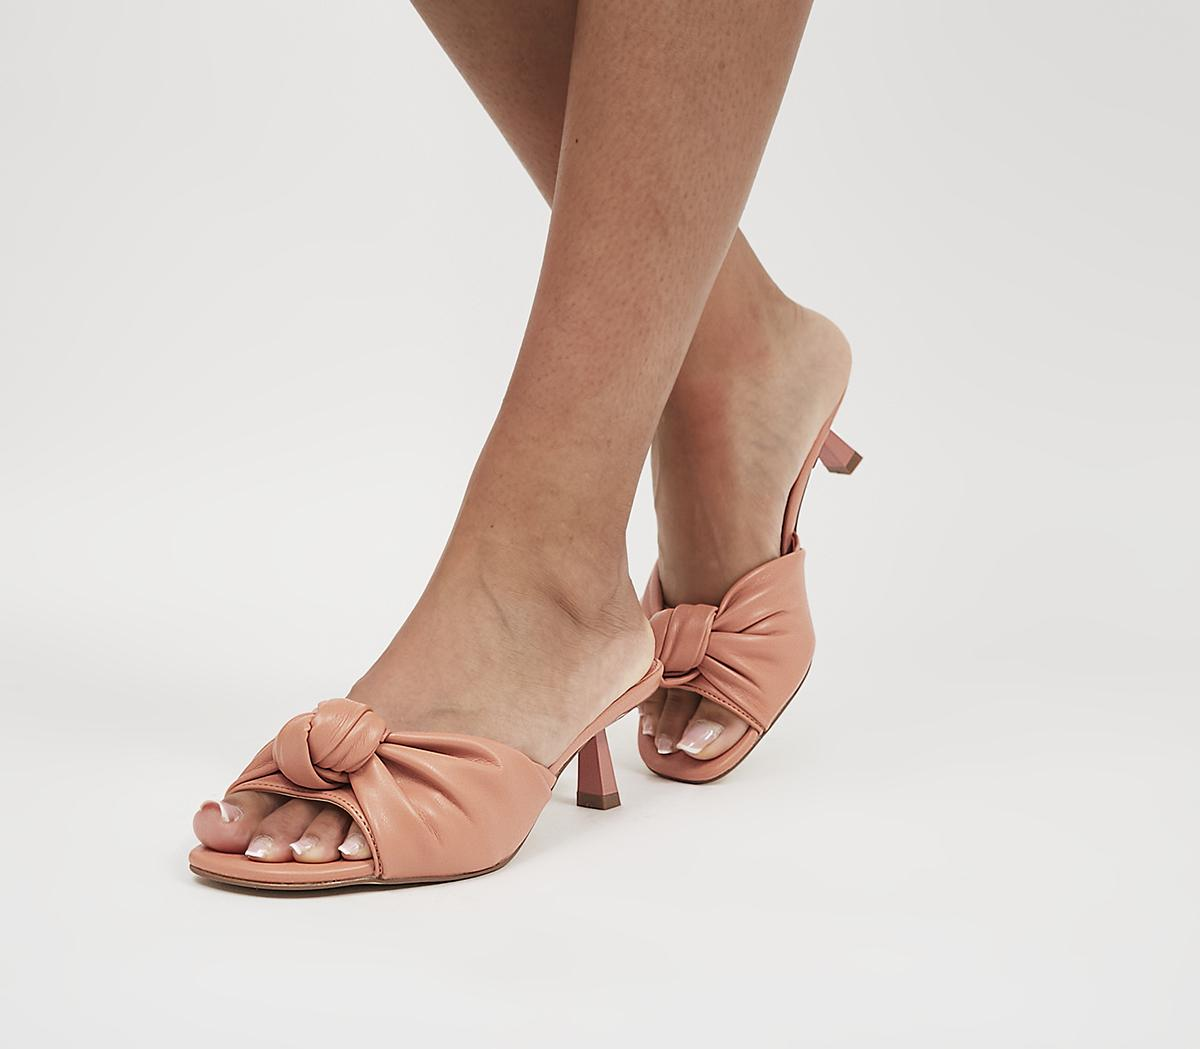 Makeover Knot Mules